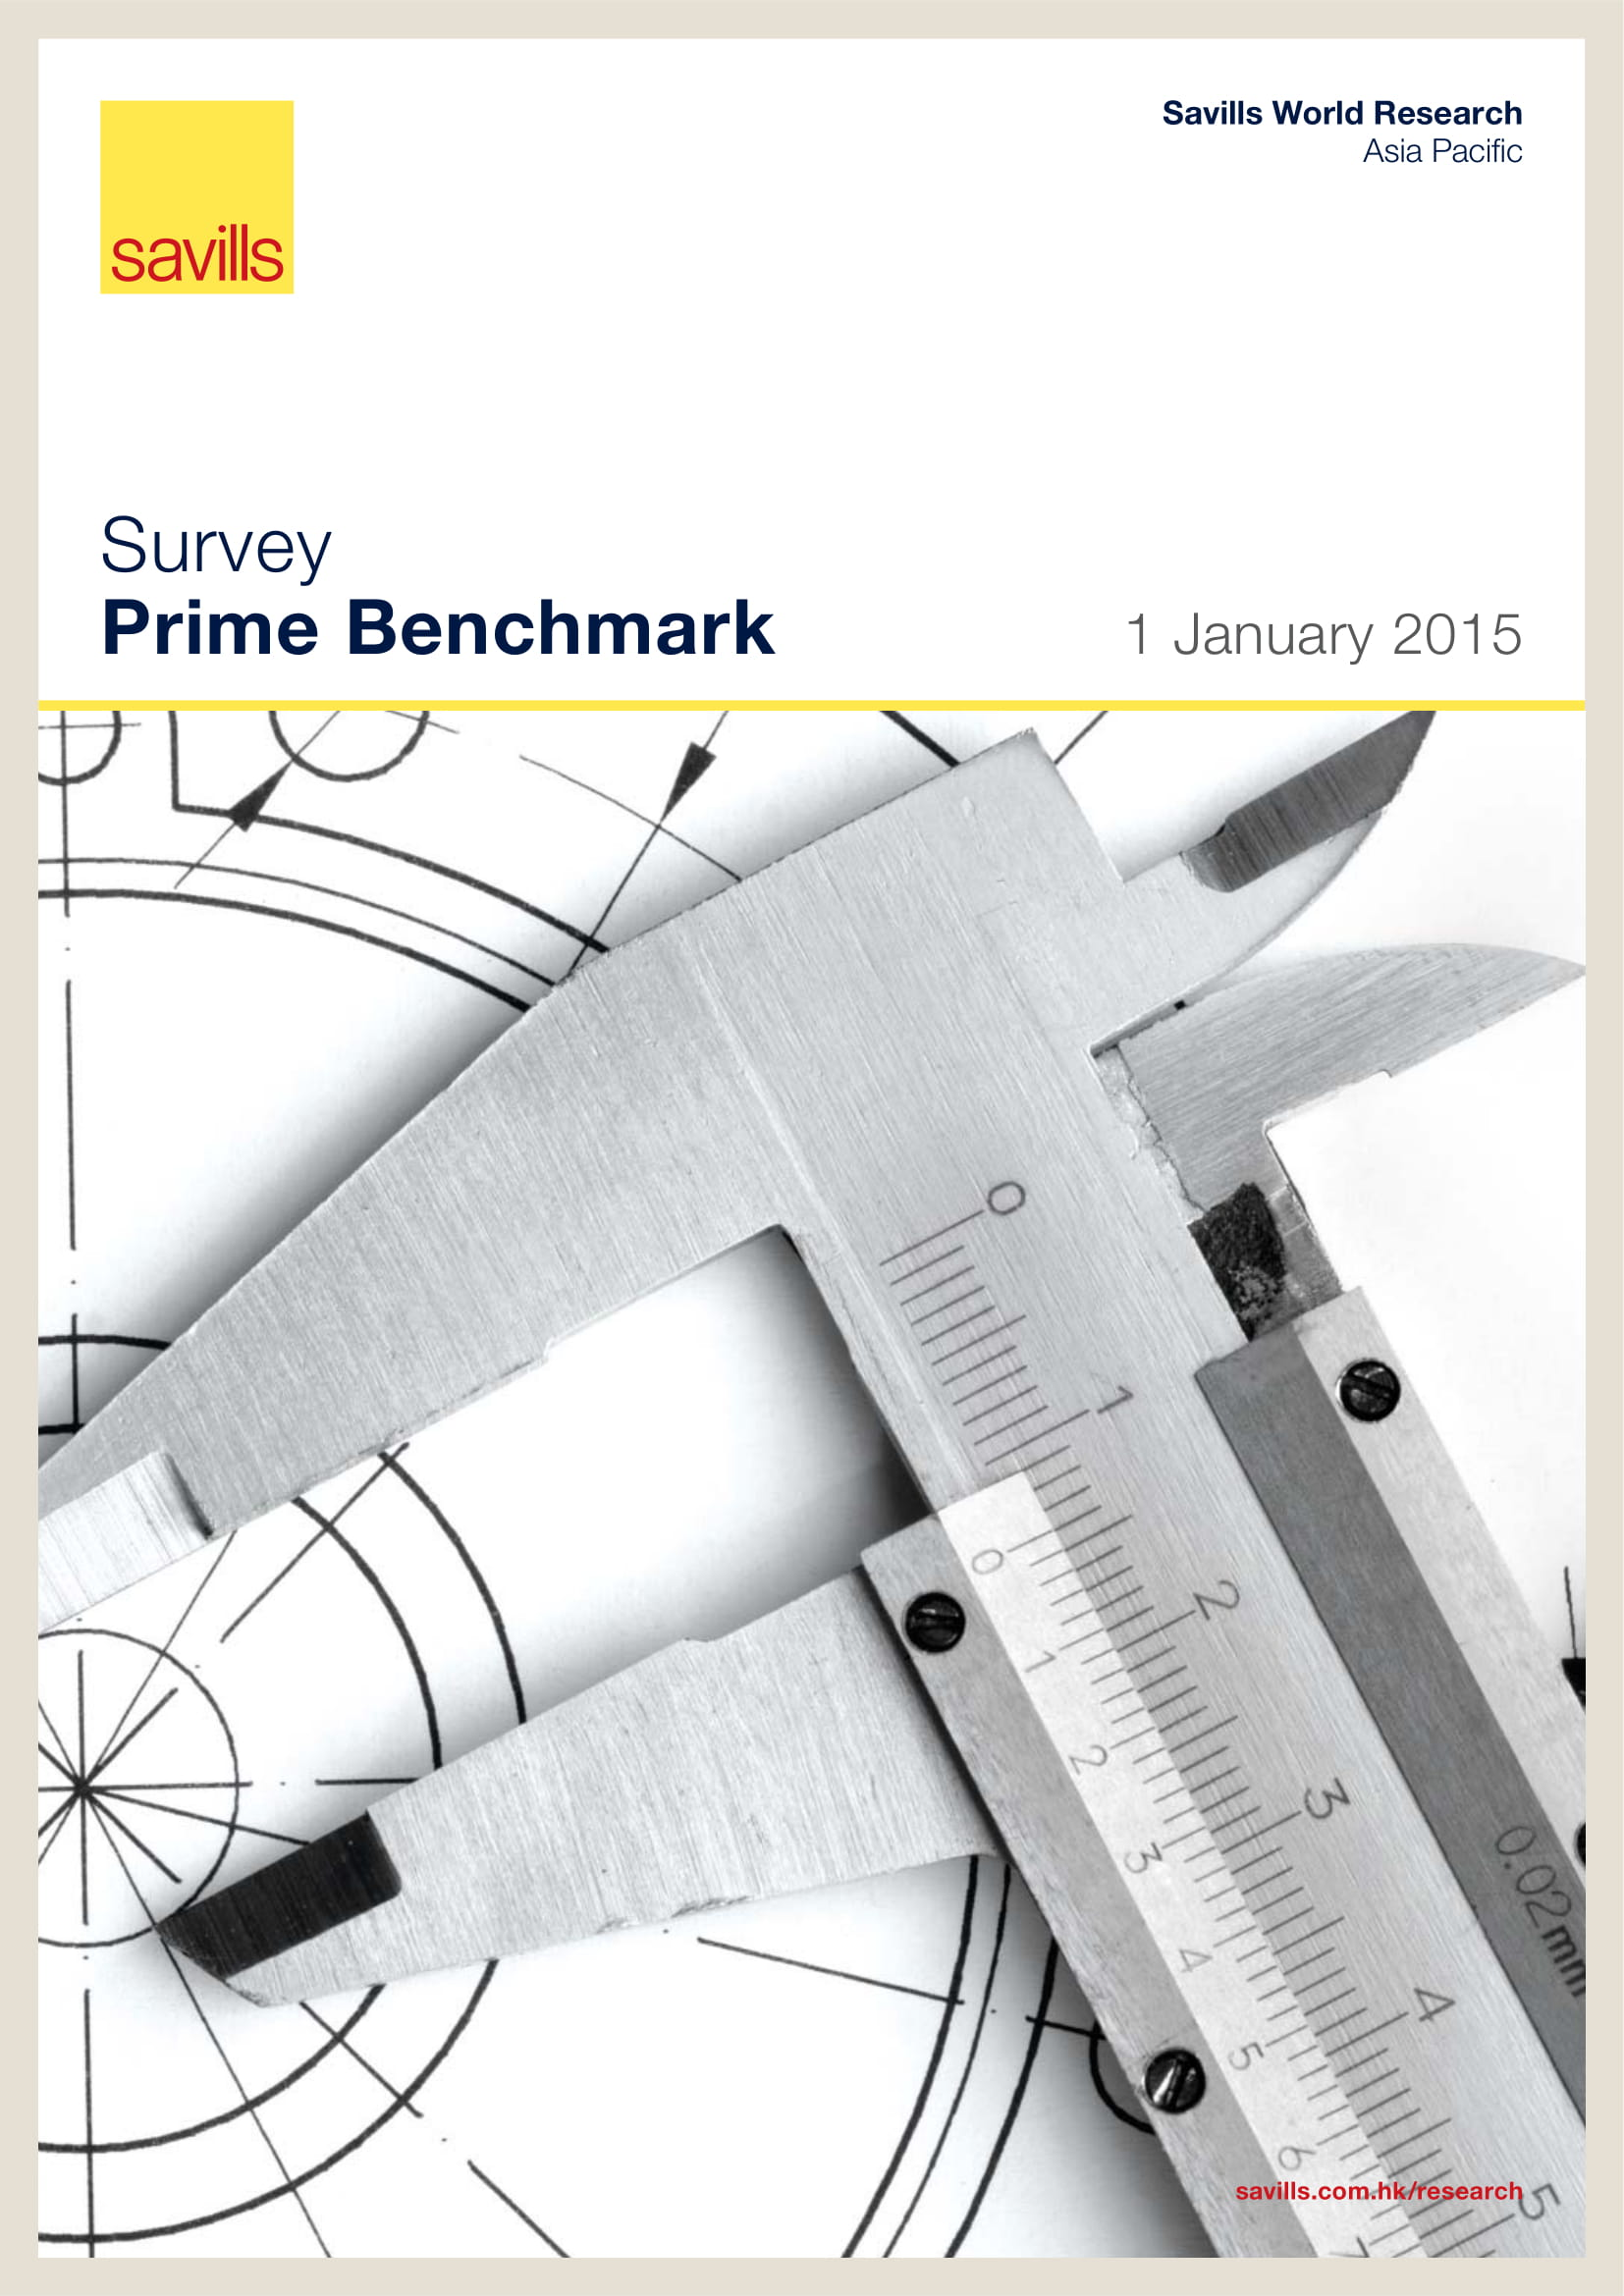 Survey Prime Benchmark 1 January 2015